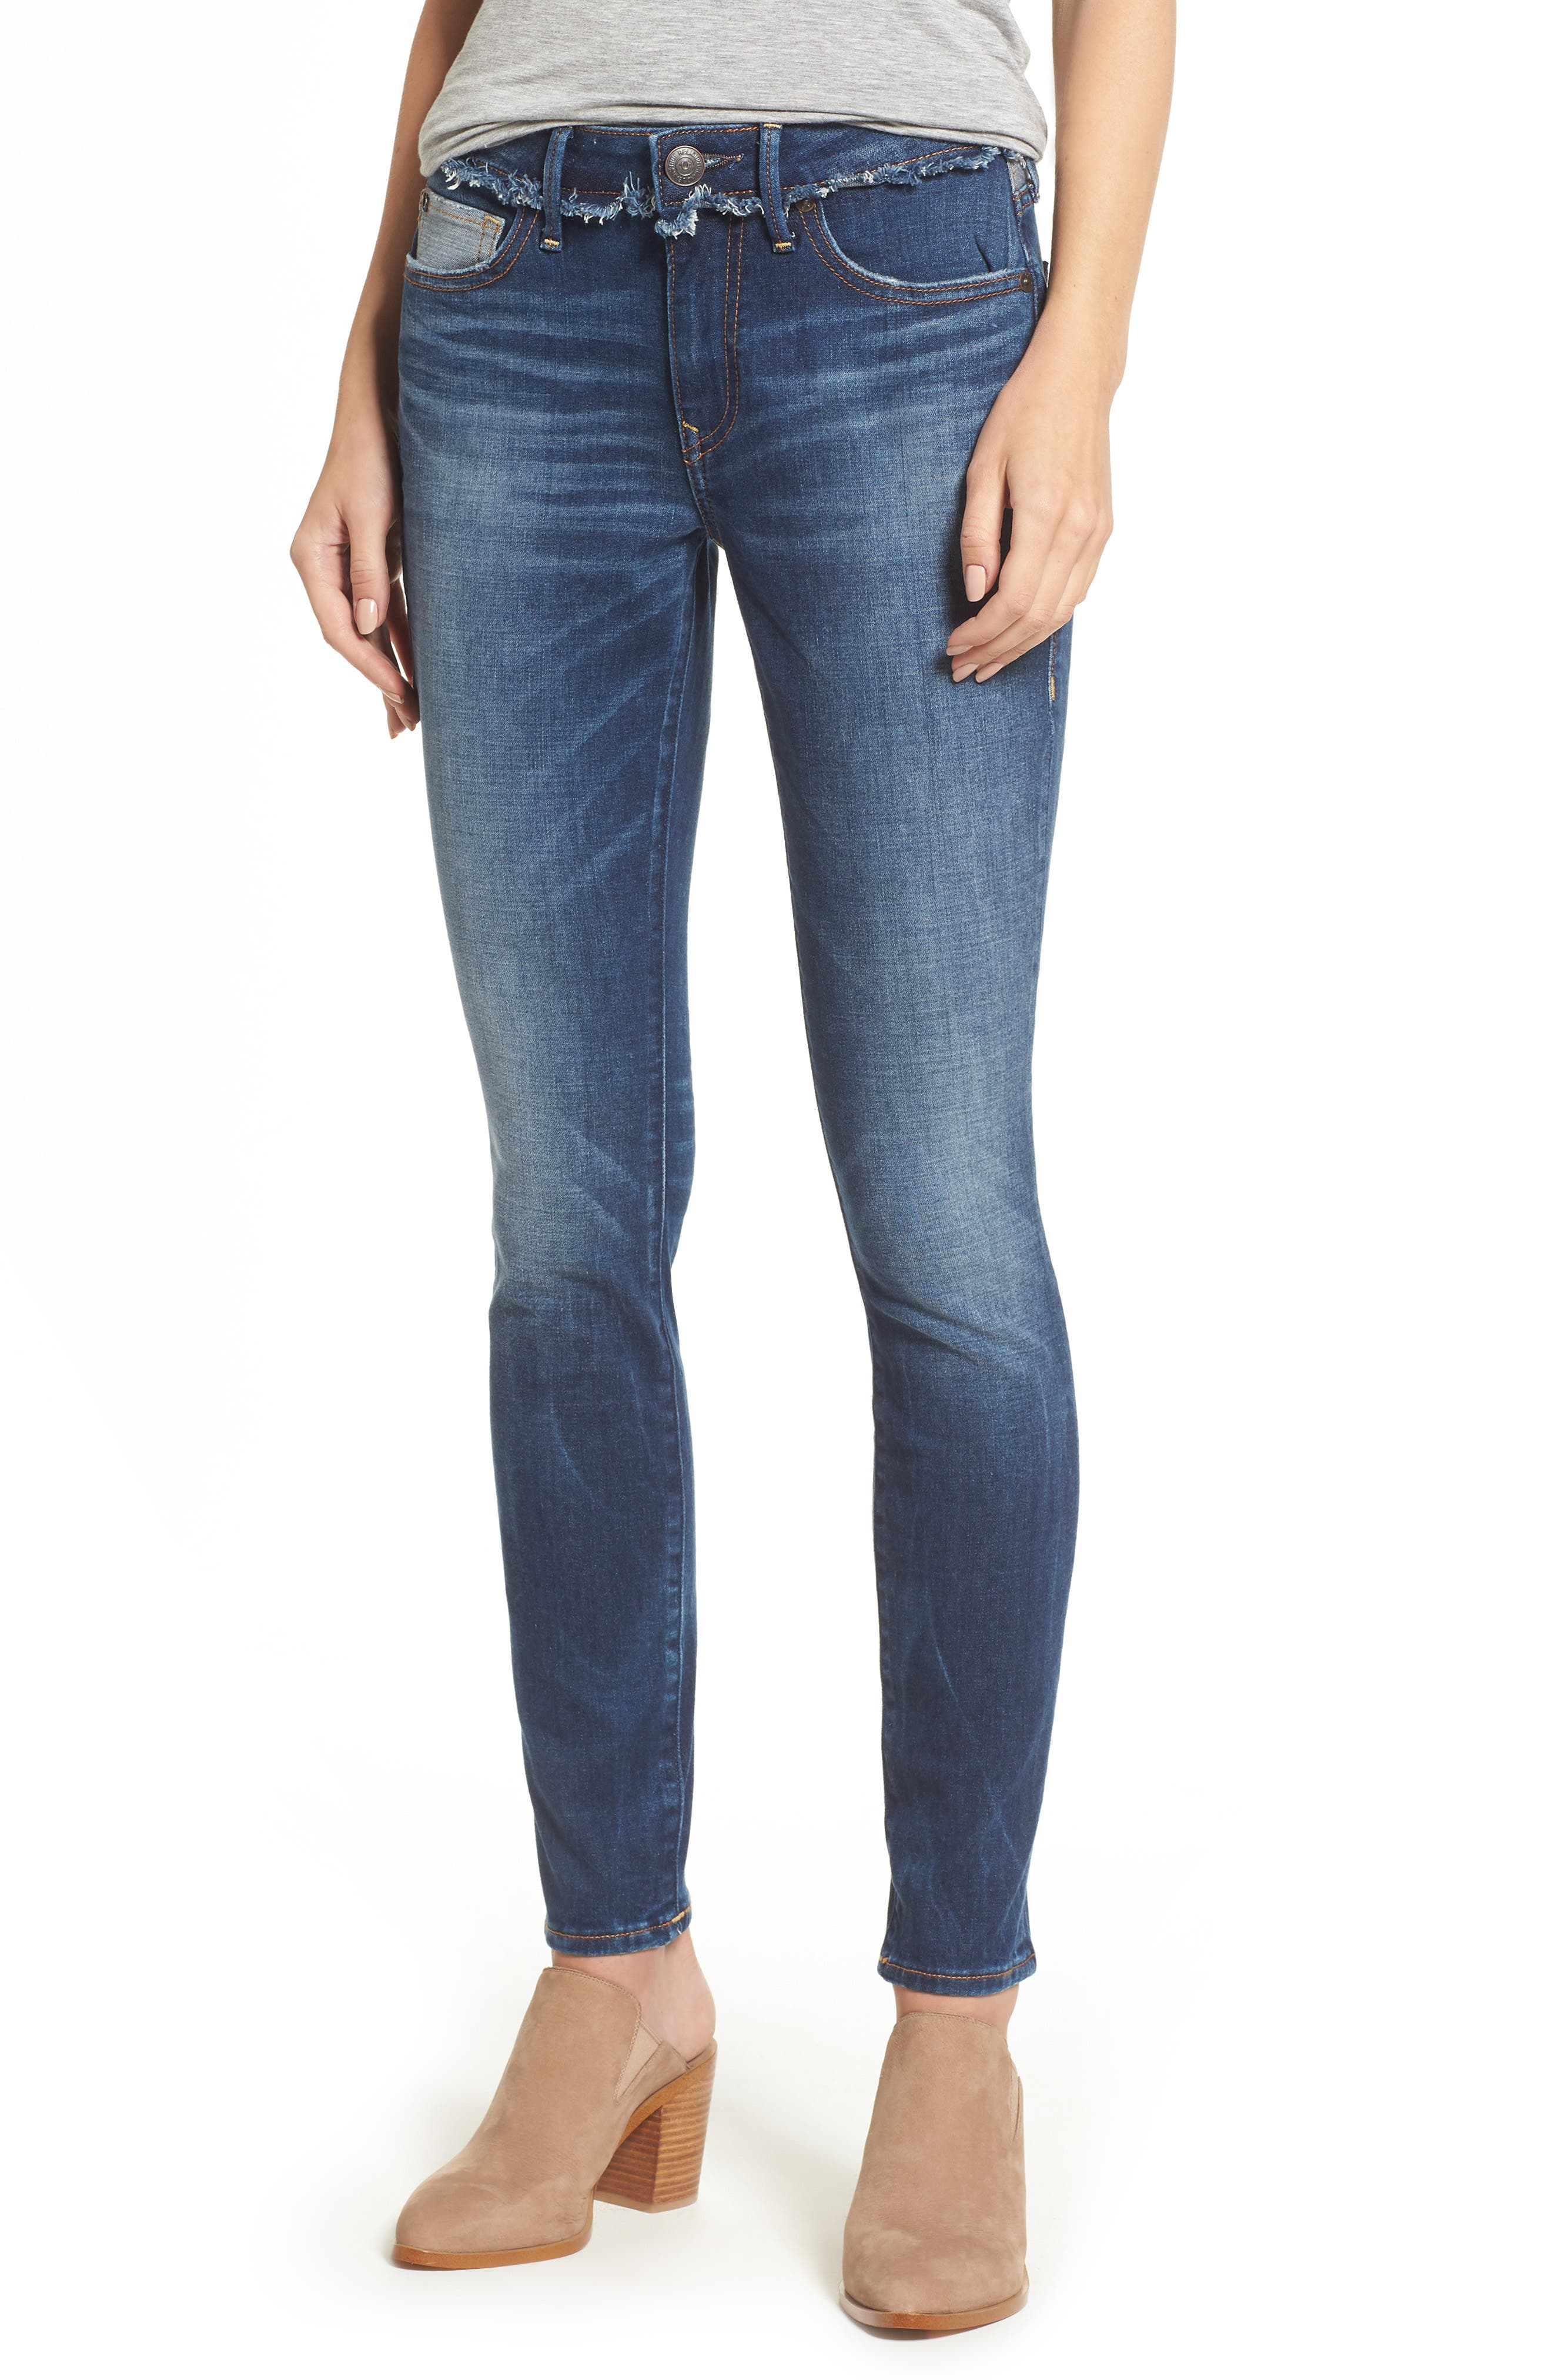 Alternate Image 1 Selected - True Religion Brand Jeans Jennie Deconstructed Skinny Jeans (Broken Record)